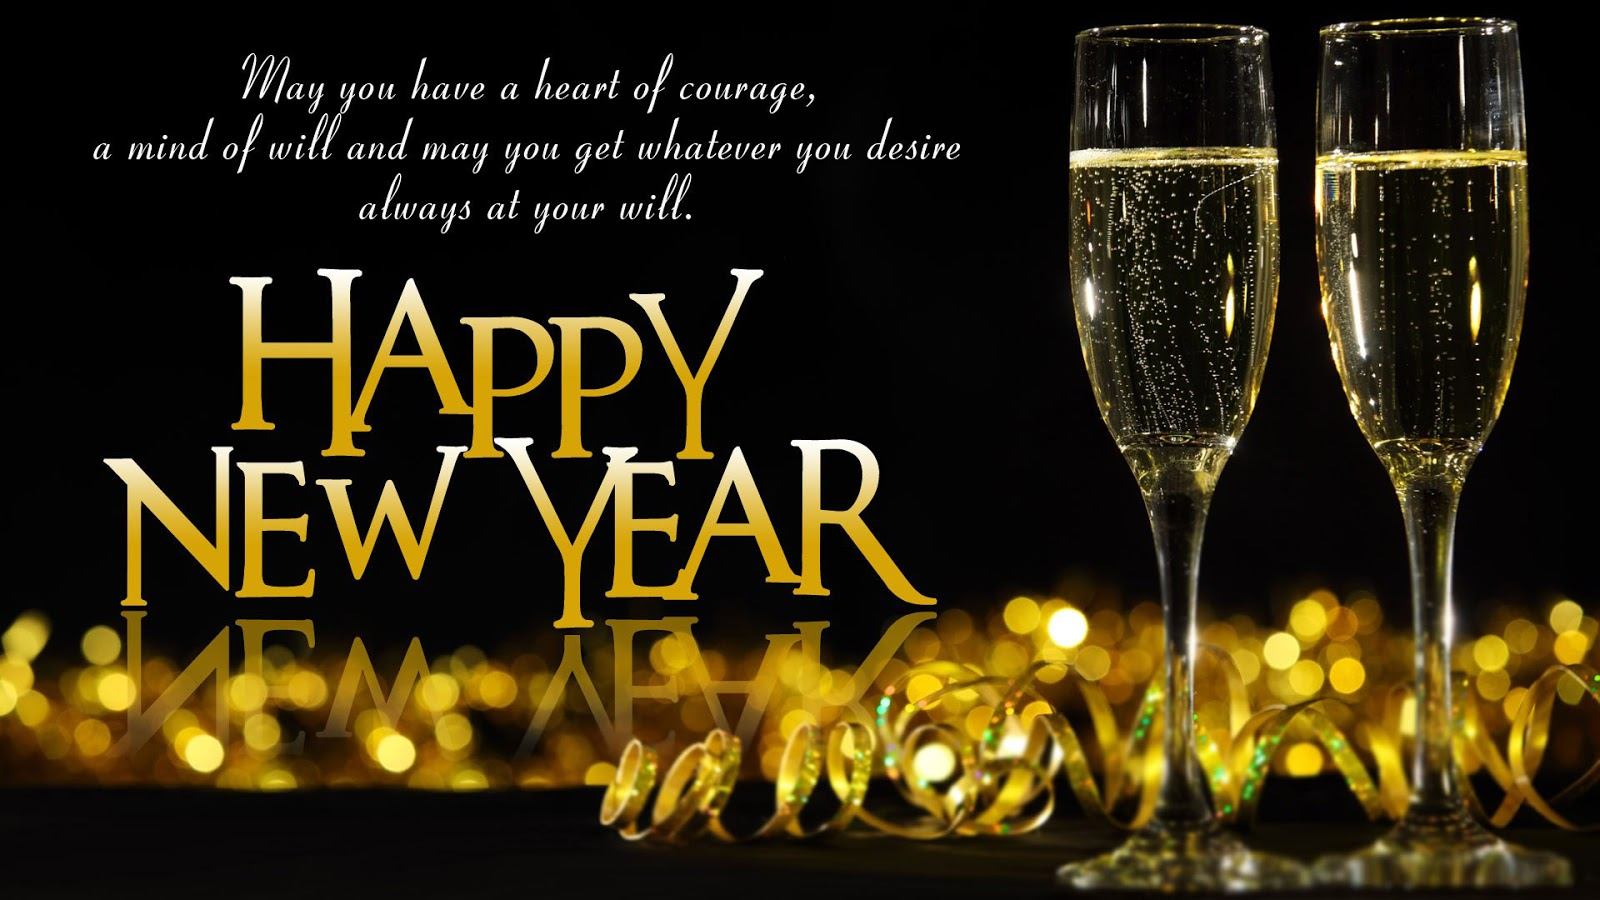 happy-new-year-hd-wallpaper-2013-4